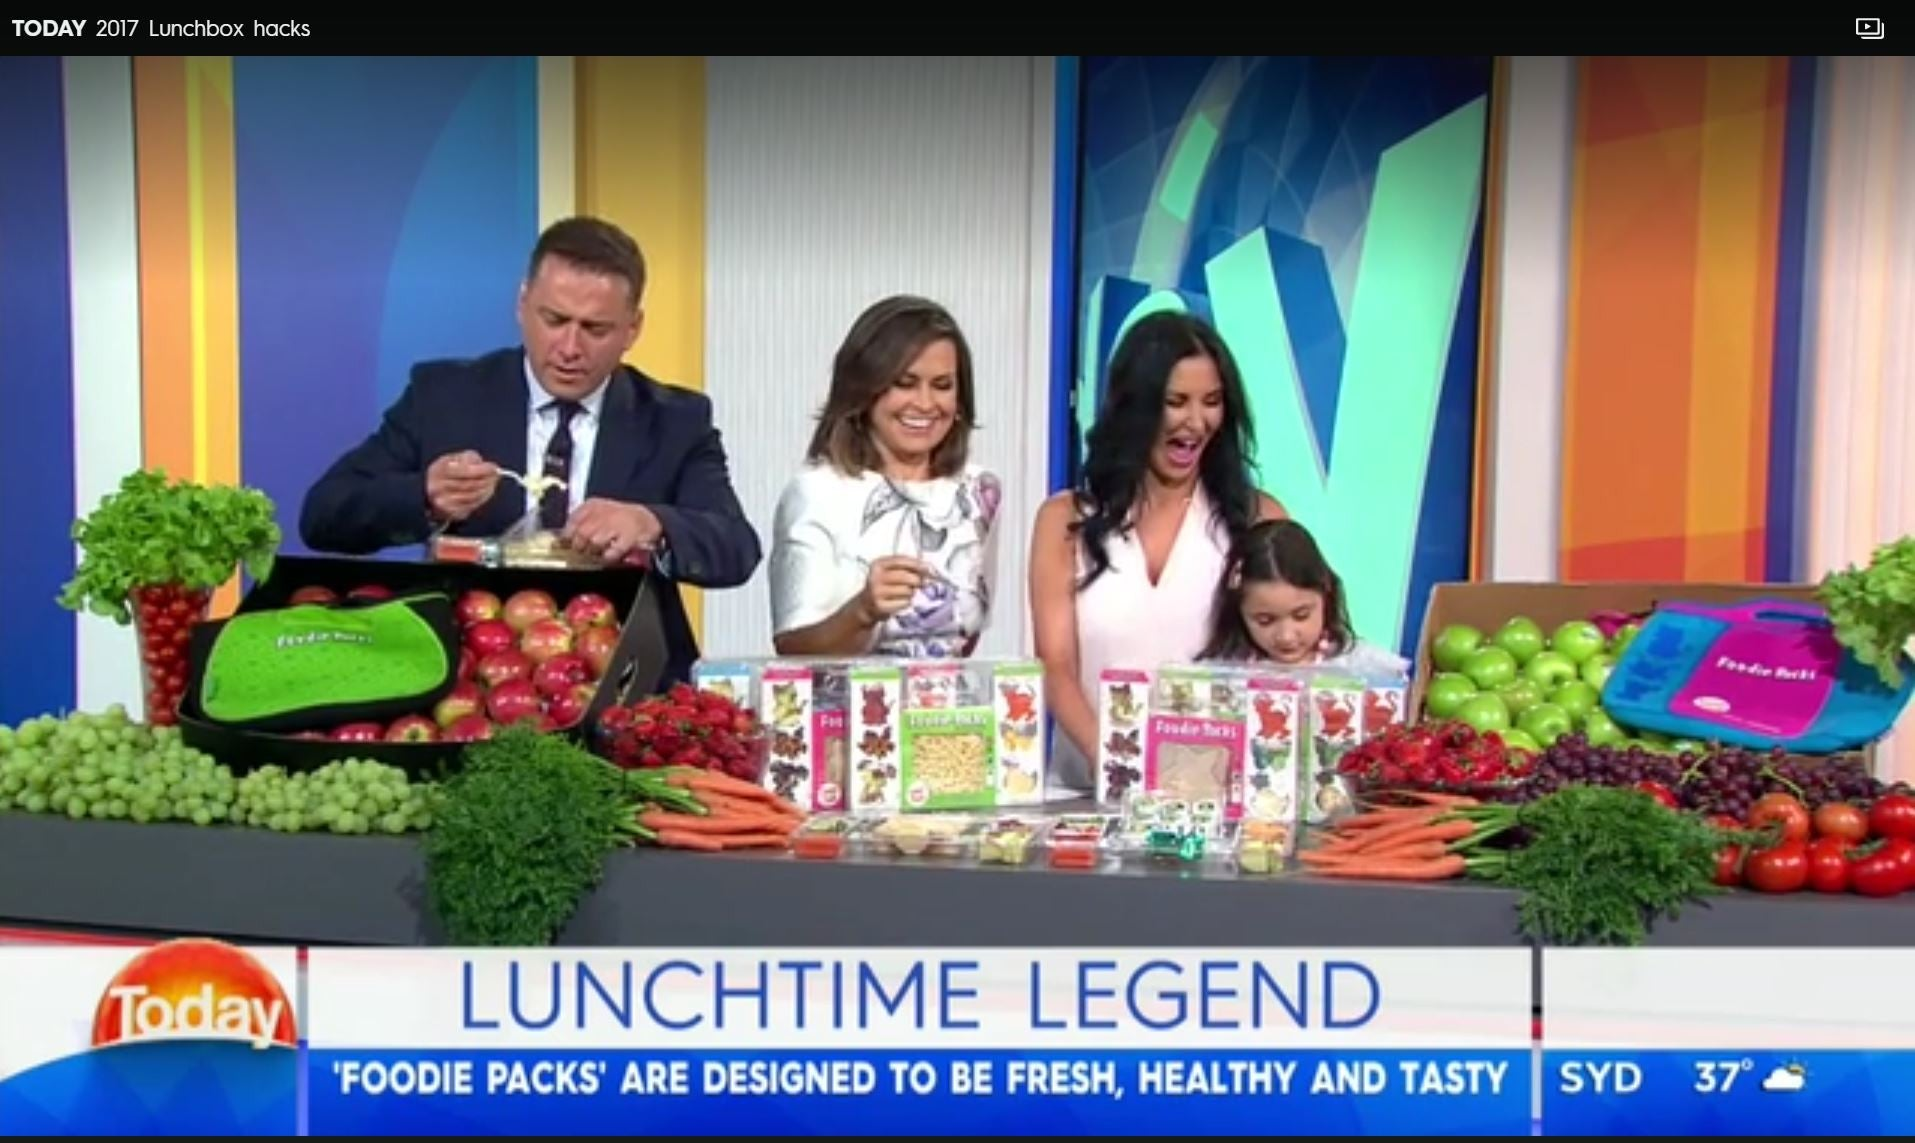 The TODAY Show on Ch9 chat with Alizah Maryanka founder of 'Foodie Packs' Healthy Fresh Nutritious Lunch Packs that are taking the stress out of school lunches.